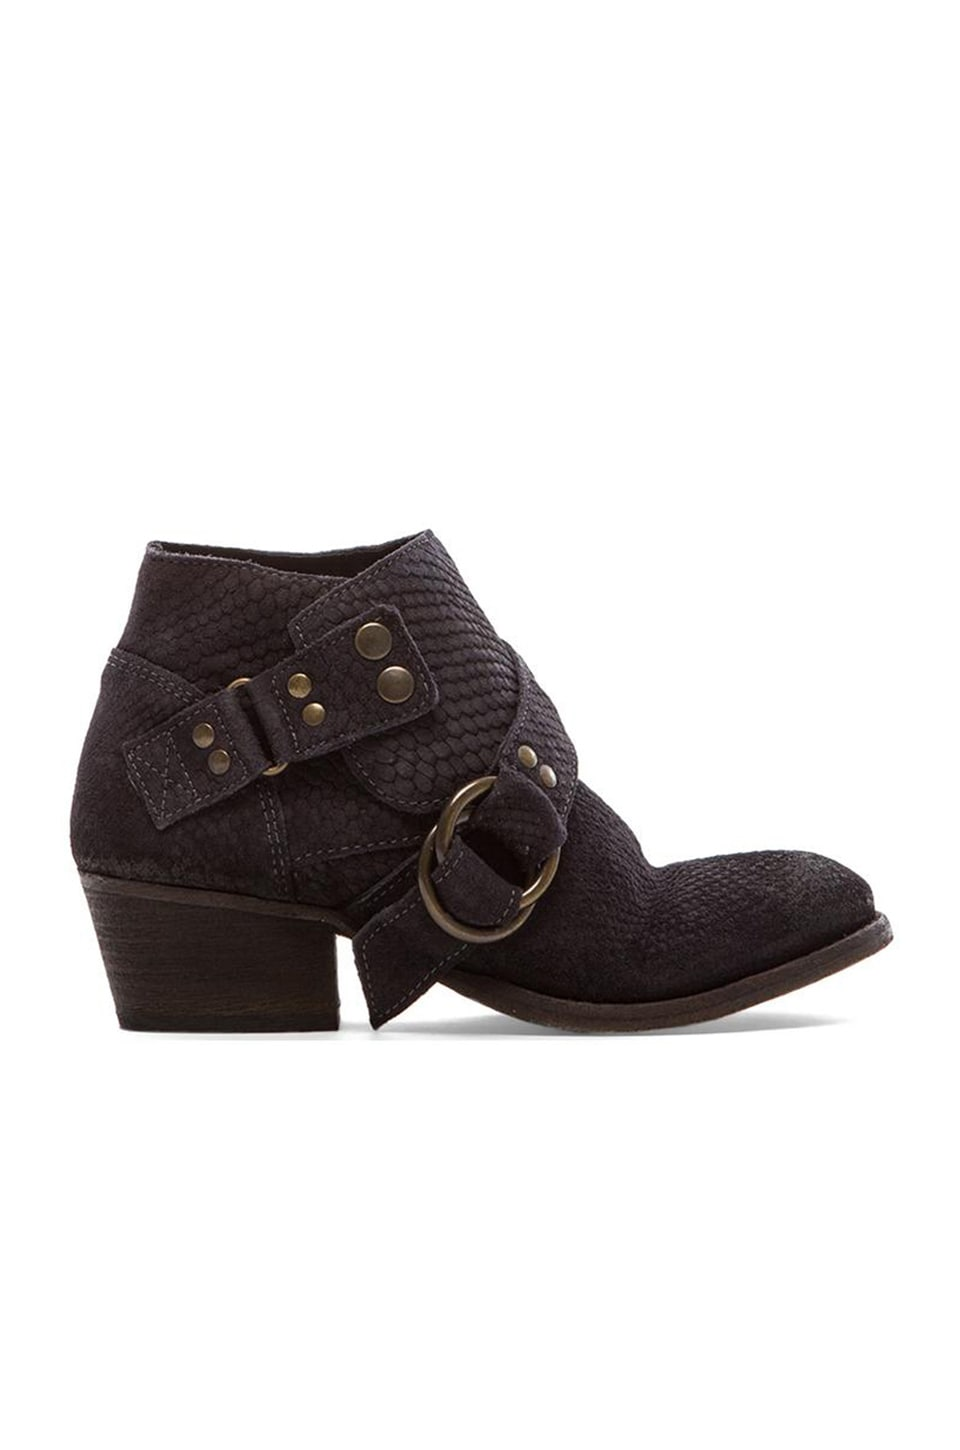 Free People Tortuga Ankle Boot in Black